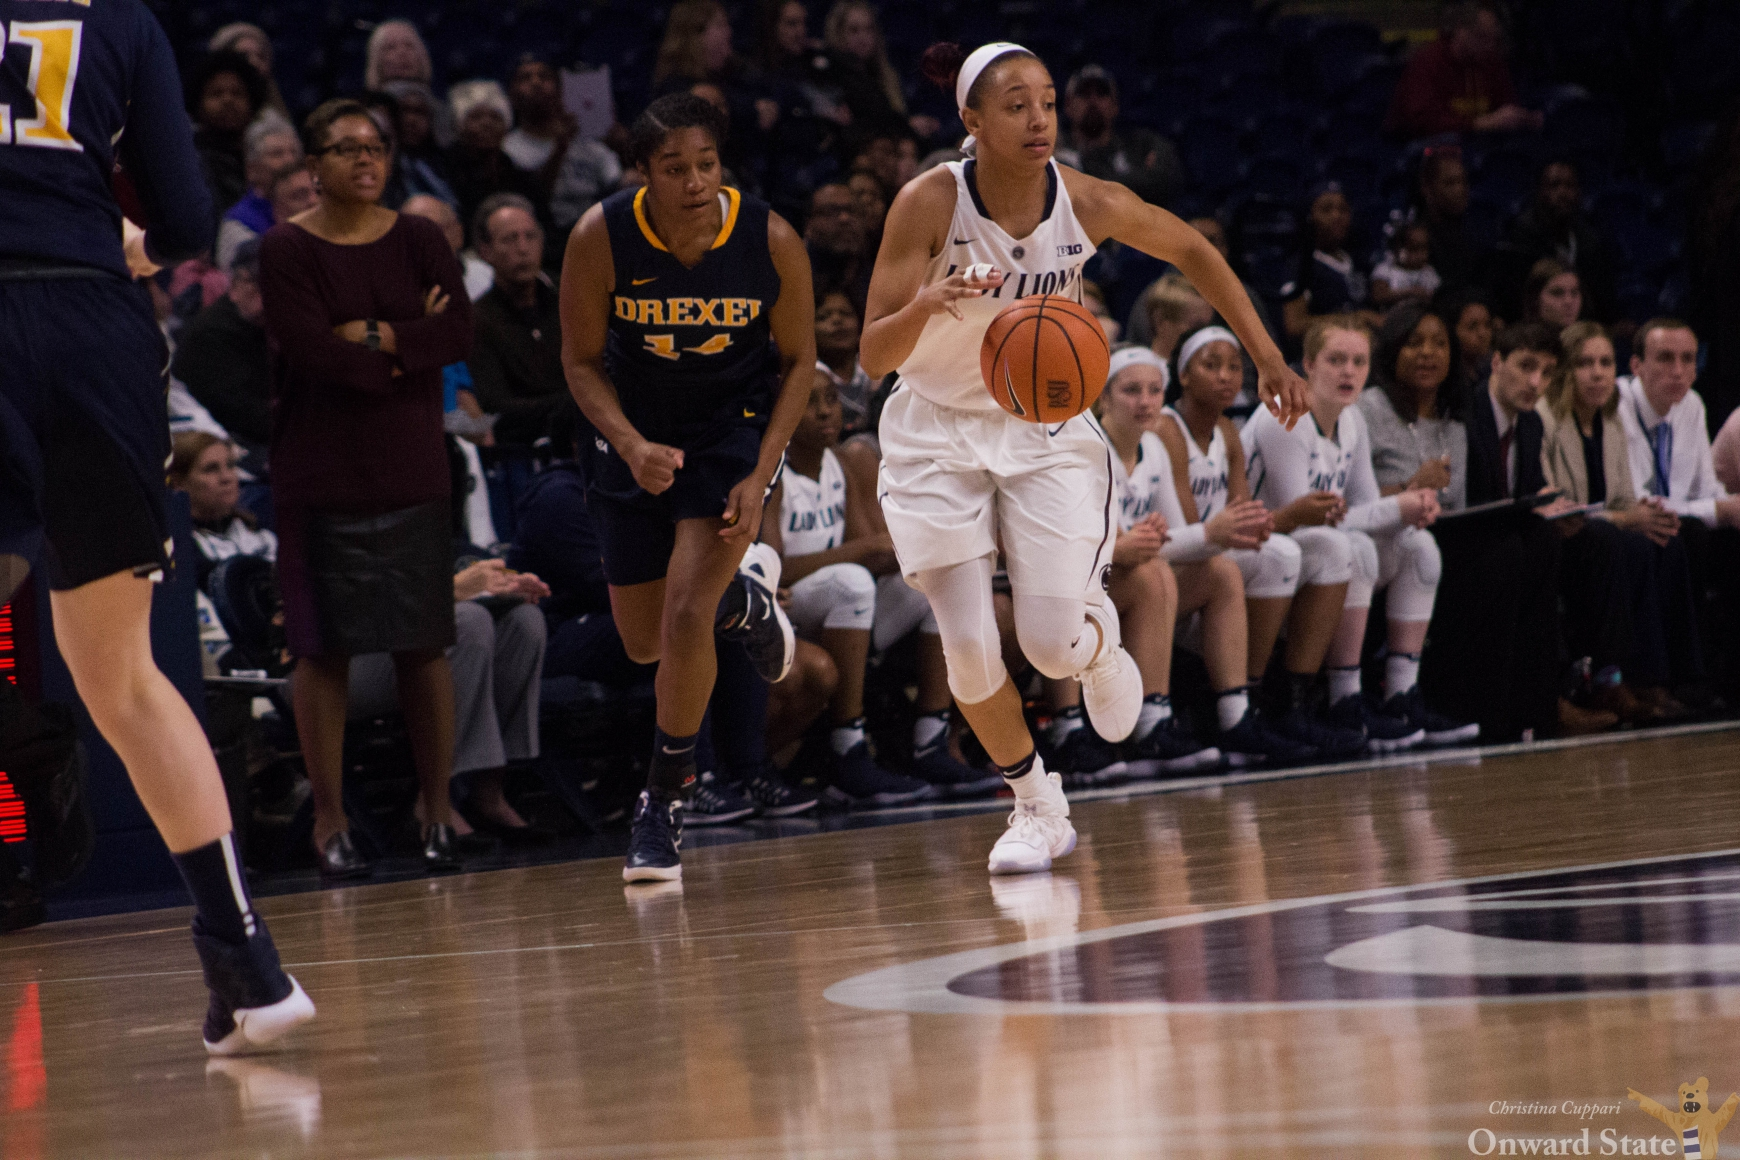 Penn State women's basketball's late rally falls short against Iowa